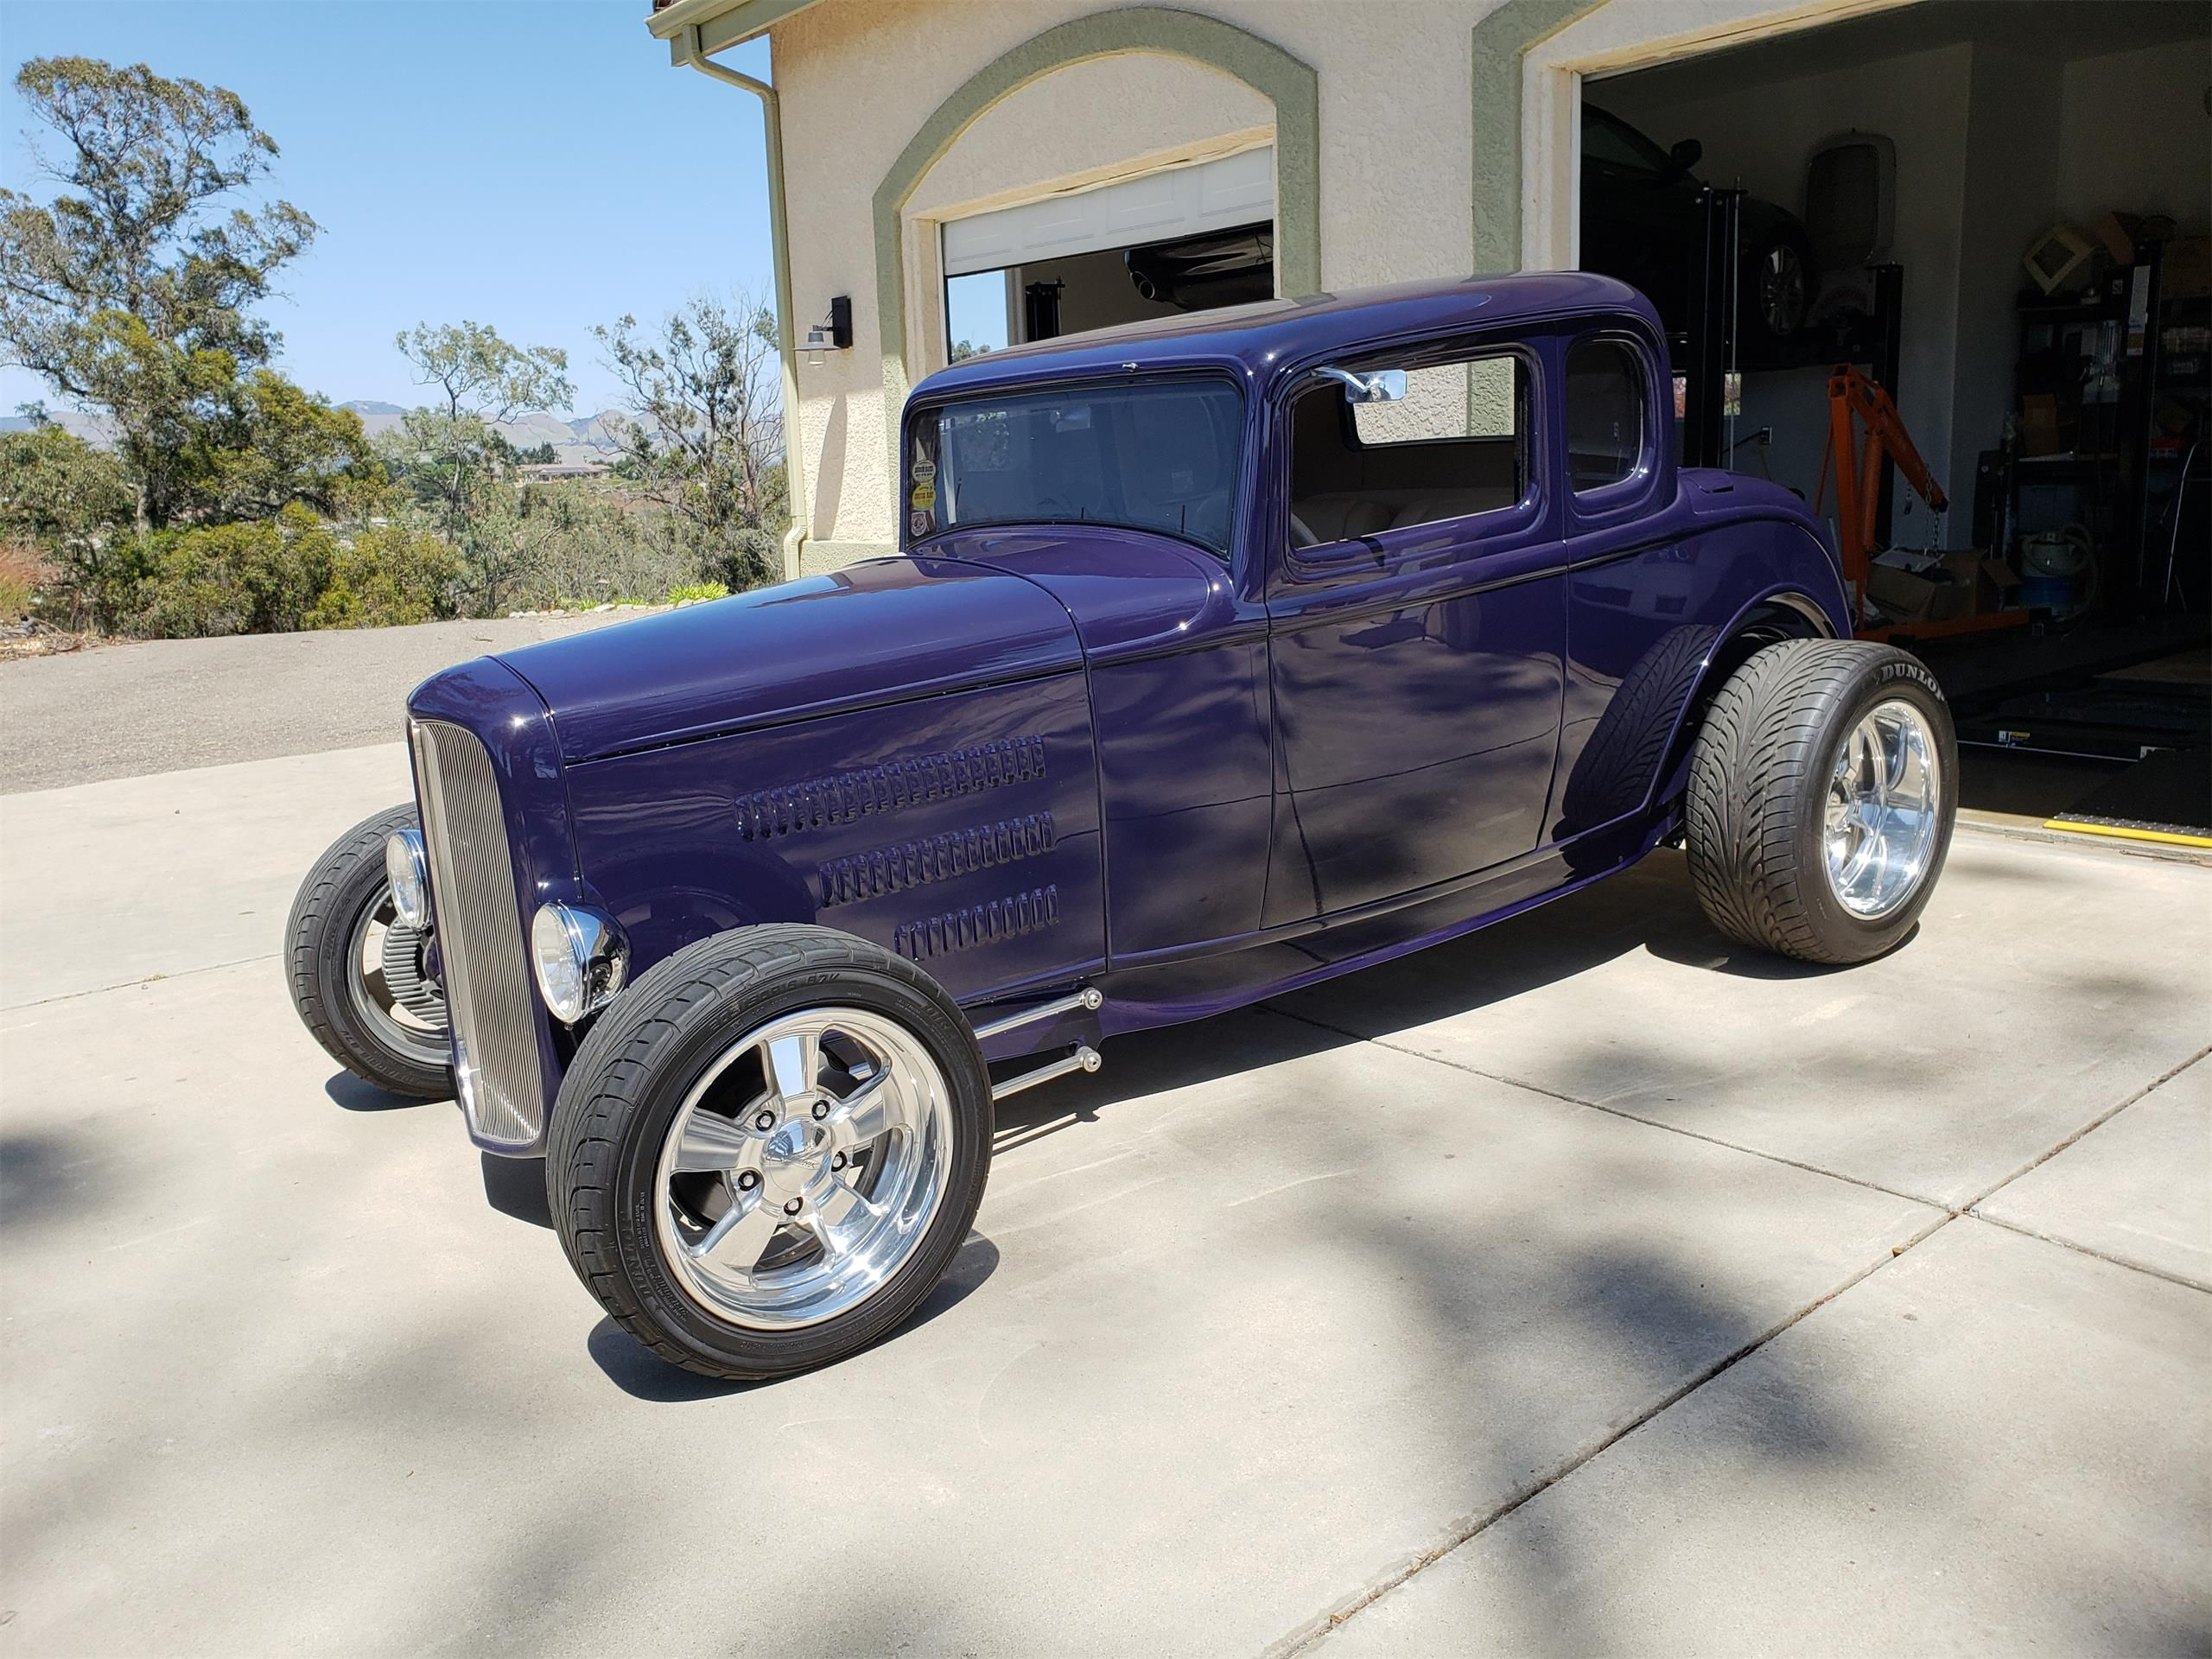 1932 Ford 5 Window Coupe For Sale Listing Id Cc 1105750 Classiccars Com Driveyourdream Ford 1932 Ford 5 Window Coupe 32 Ford 1932 Ford